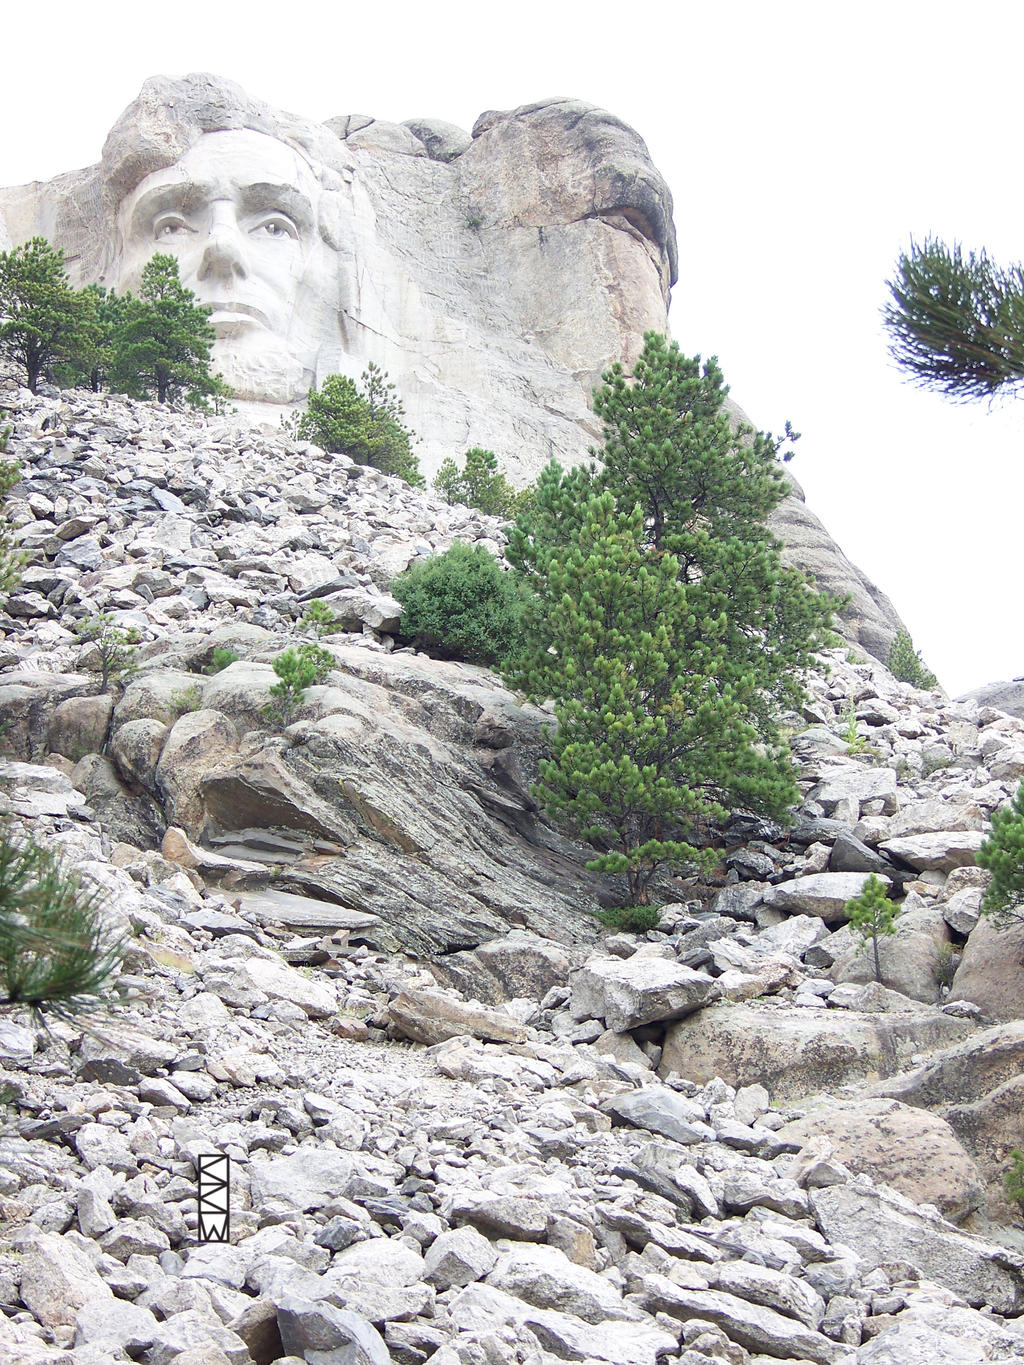 Lincoln at Mount Rushmore, SD, 8/23/2013 09:29AM by Crigger